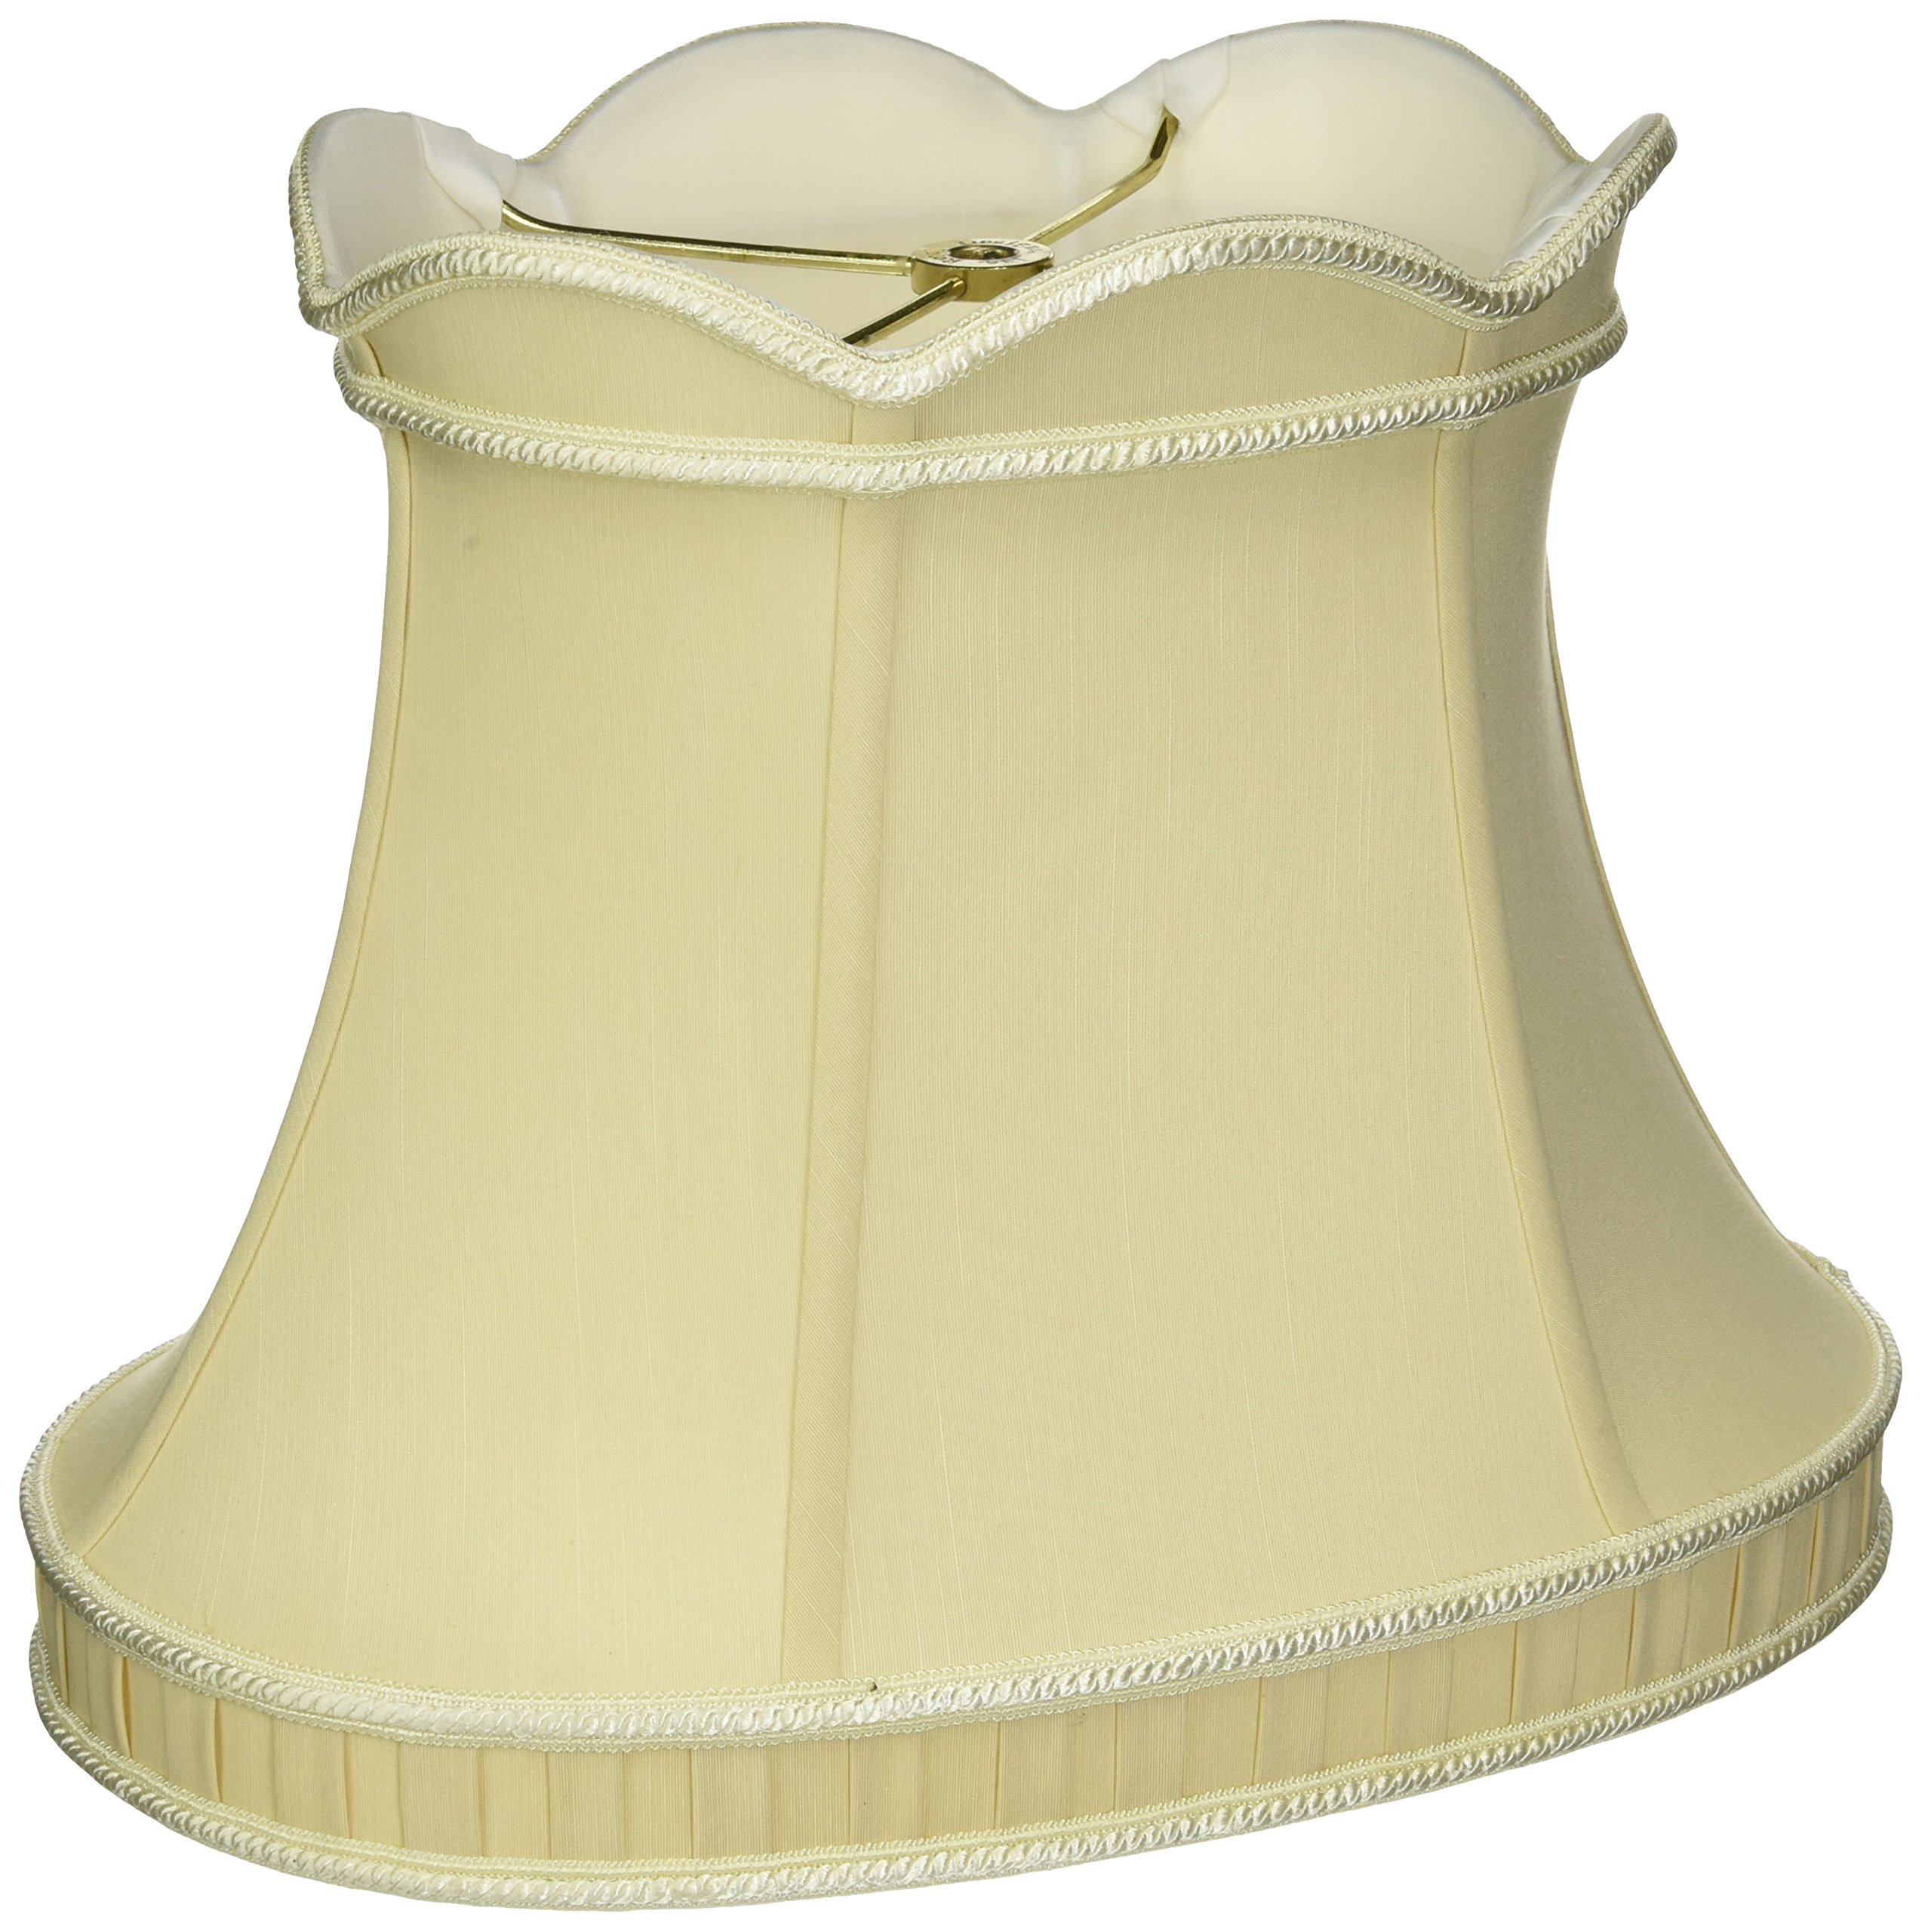 Top Scallop with Gallery Designer Lamp Shade